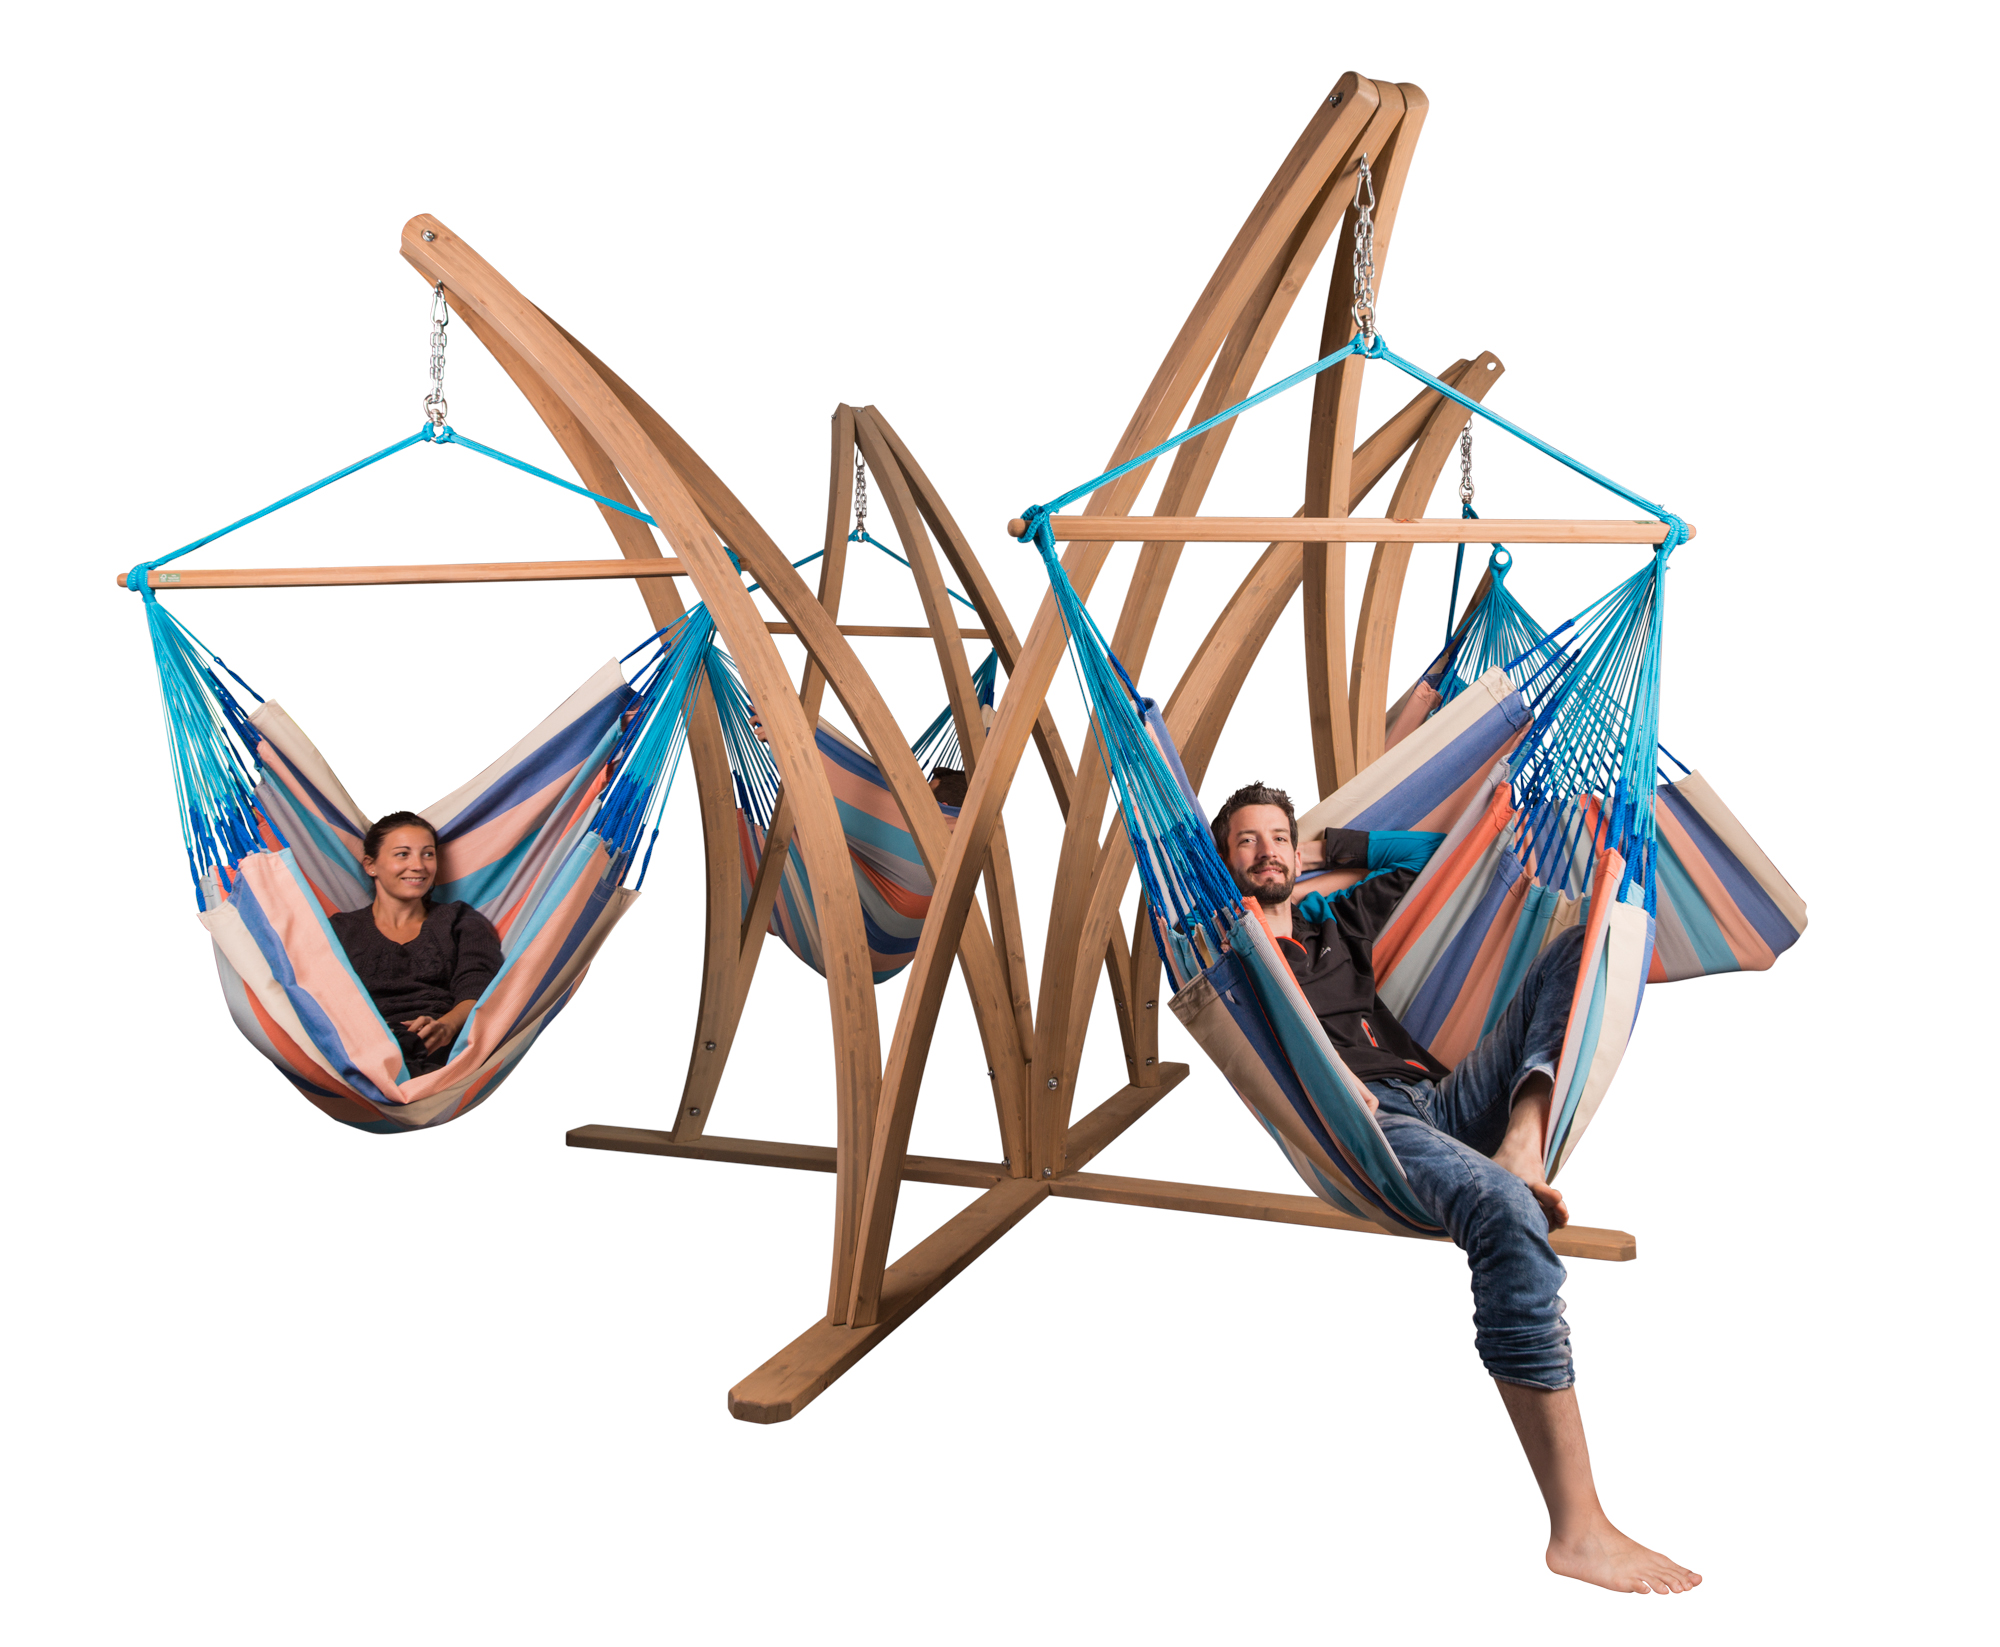 wood-stand-for-4-hammock-chairs